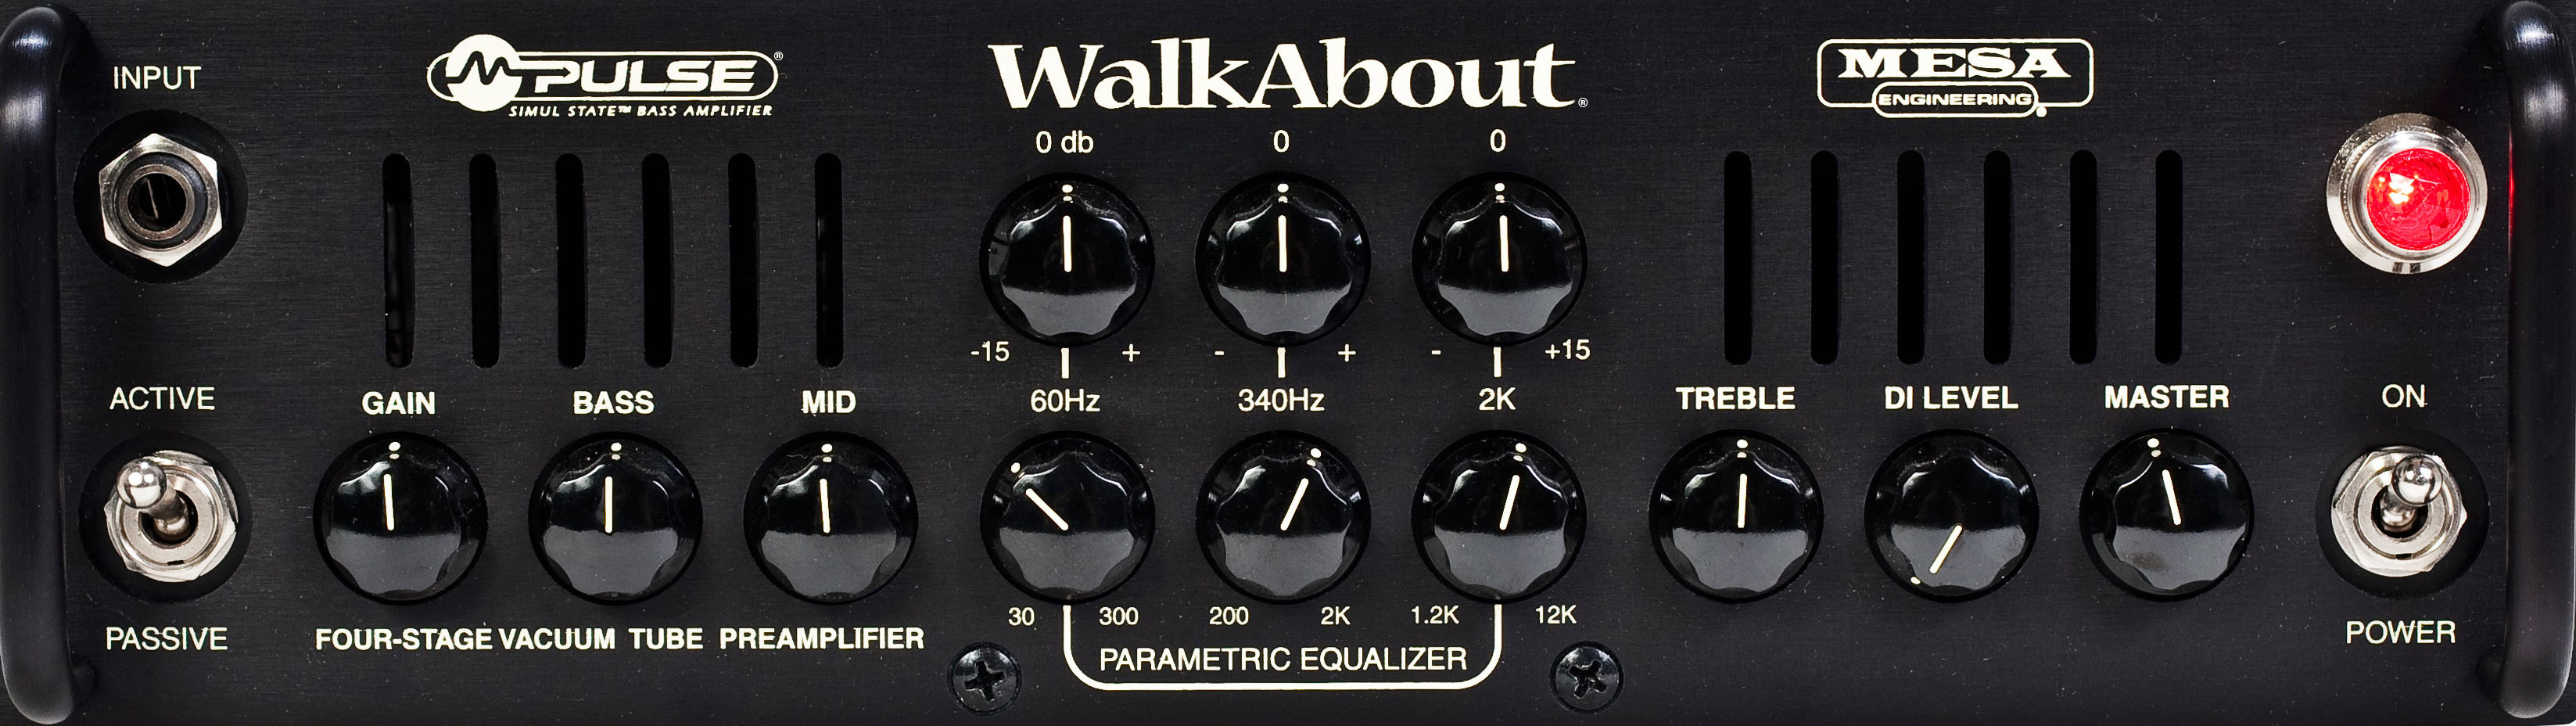 M Pulse Walkabout Mesa Boogie Simple Easy Parametric Amp Graphic Eqs Plus Peaks Notches Please Note This Product Is No Longer In Production As Of May 2017